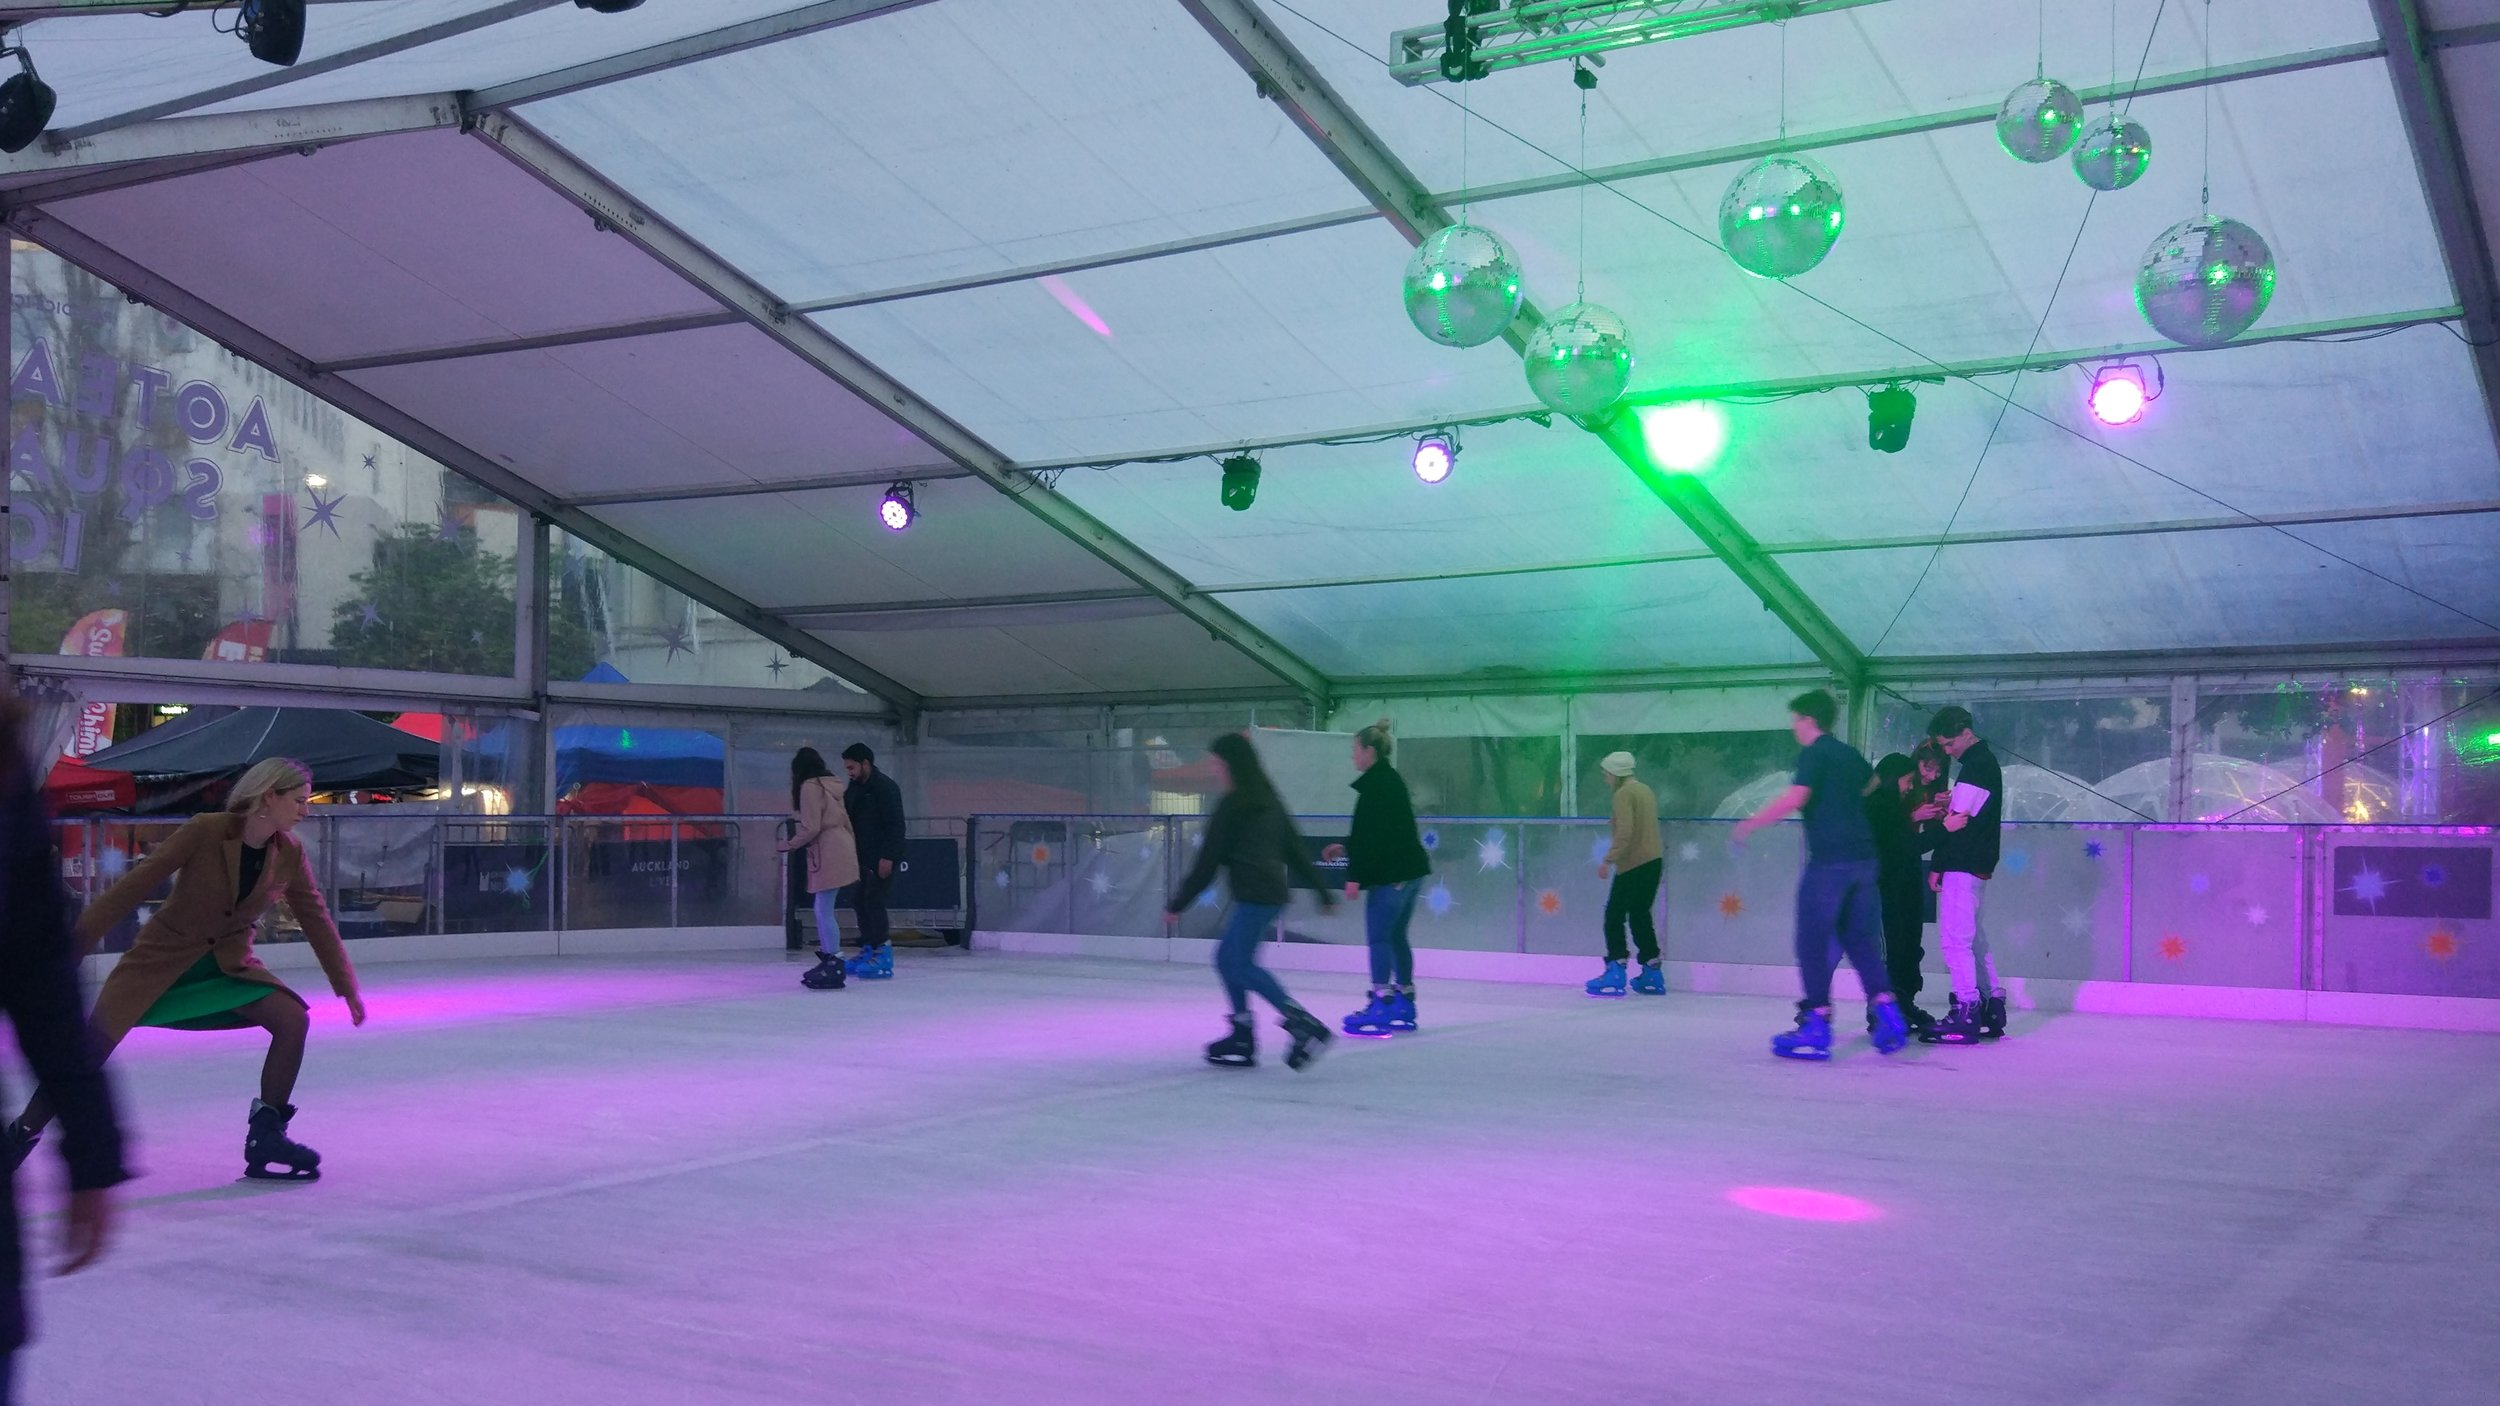 The temporary ice rink on aotea Square in AUckland